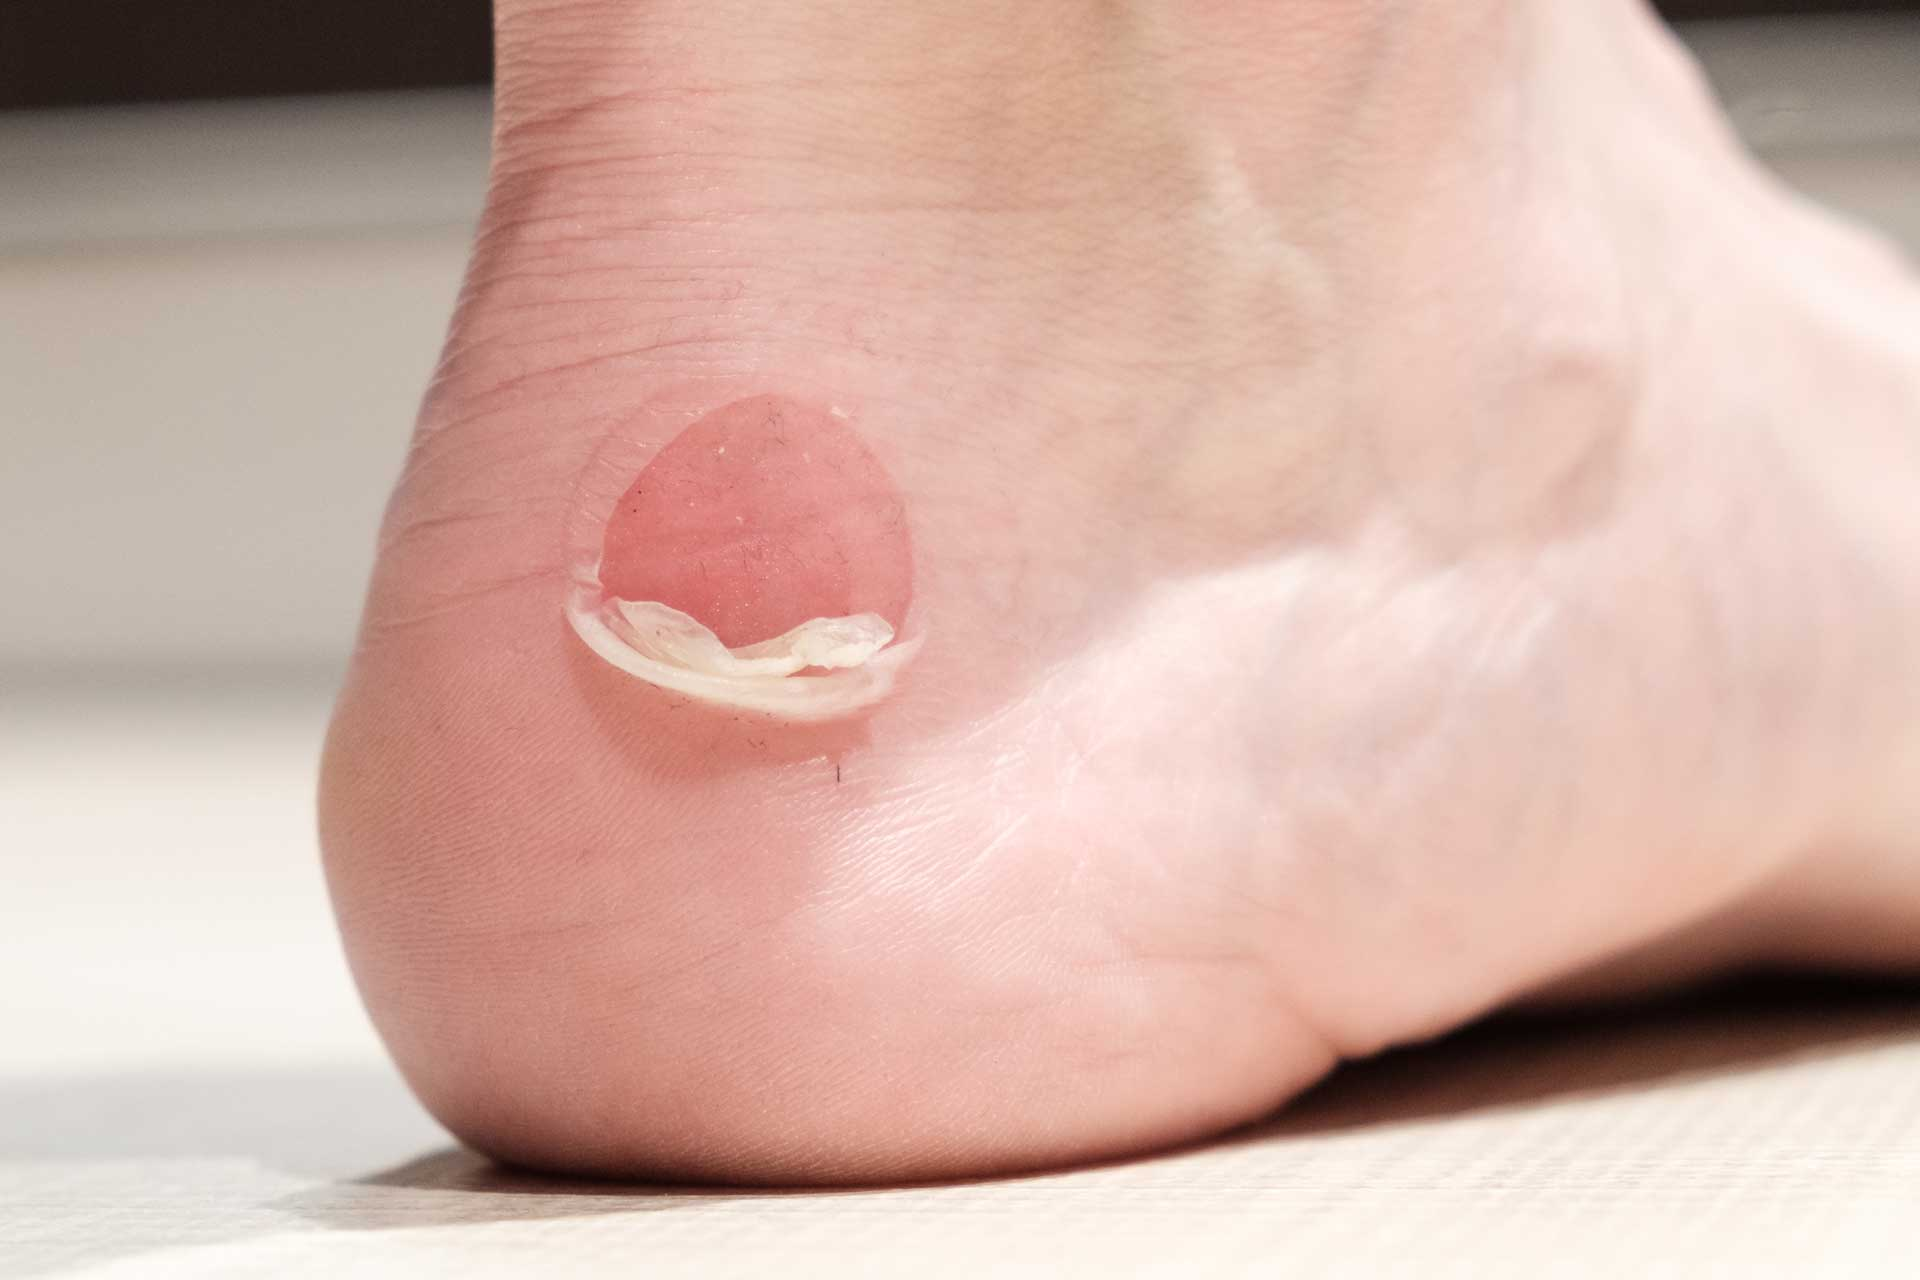 image of blister care for feet and ankles